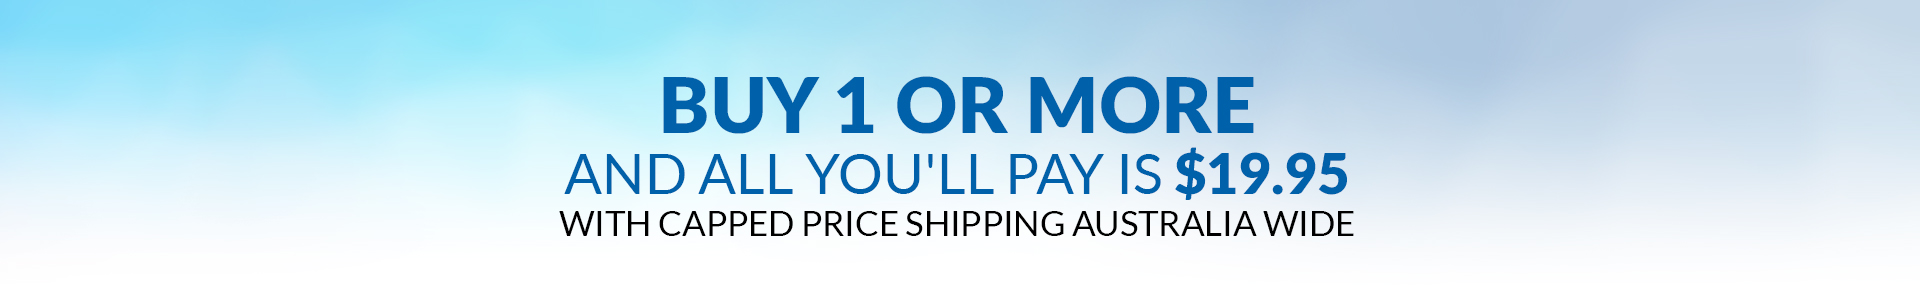 capped-price-shipping-banner.jpg